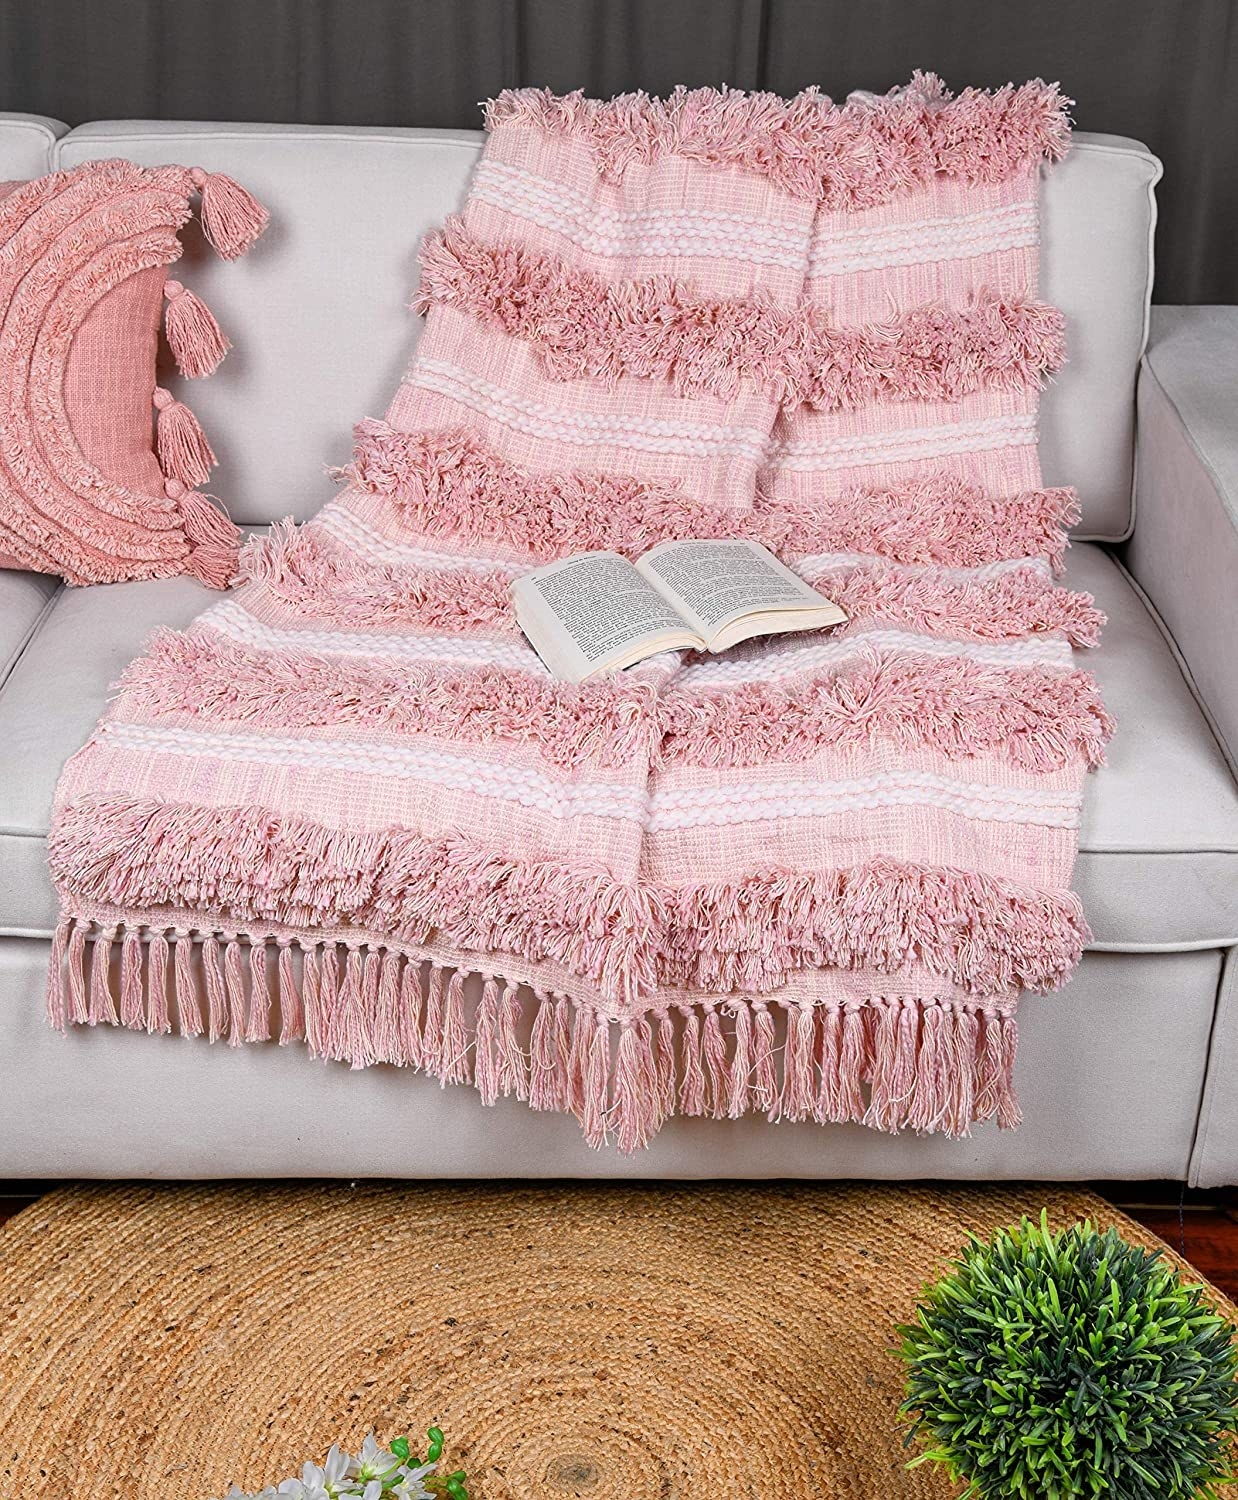 A baby pink throw with alternating rows of cloth and tassel.